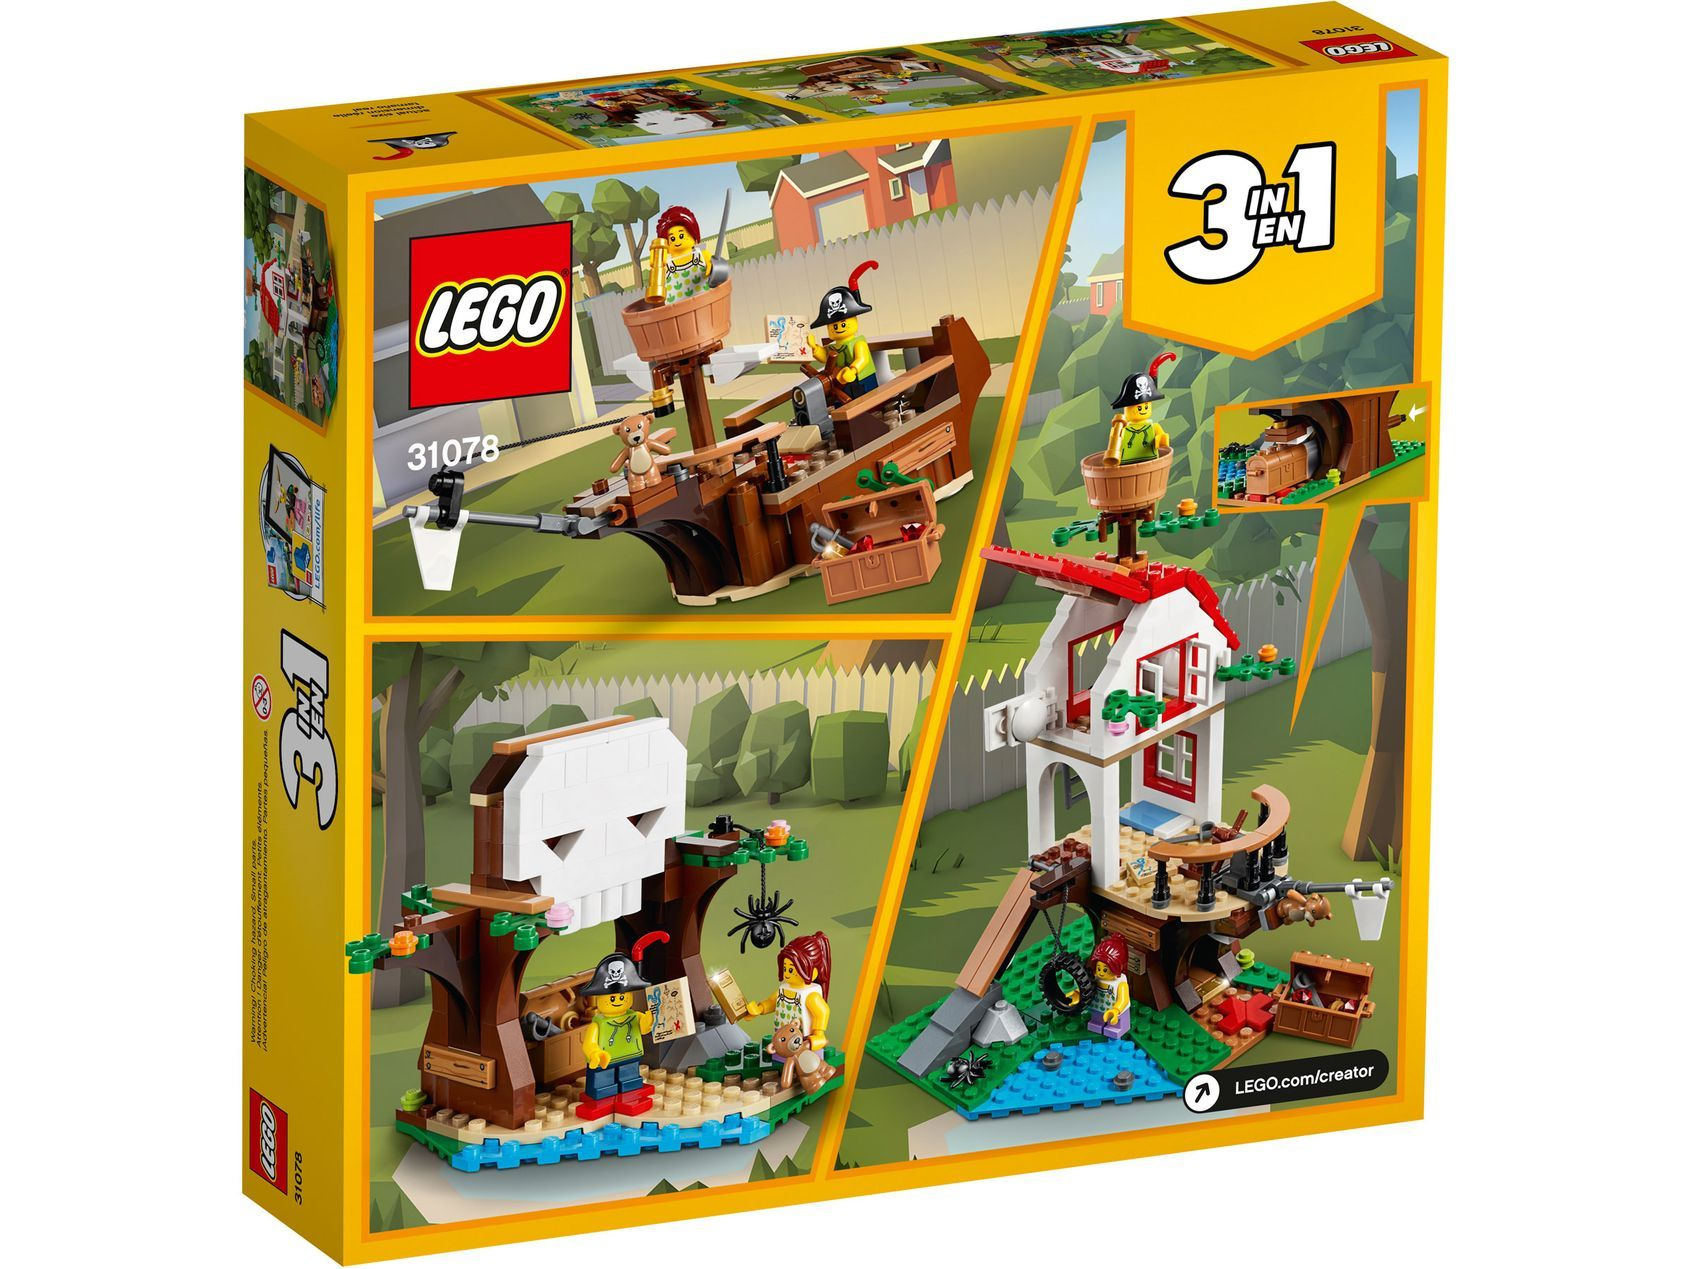 Treehouse Treasures 31078 Creator 3 In 1 Buy Online At The Official Lego Shop Us Lego Creator Tree House Lego